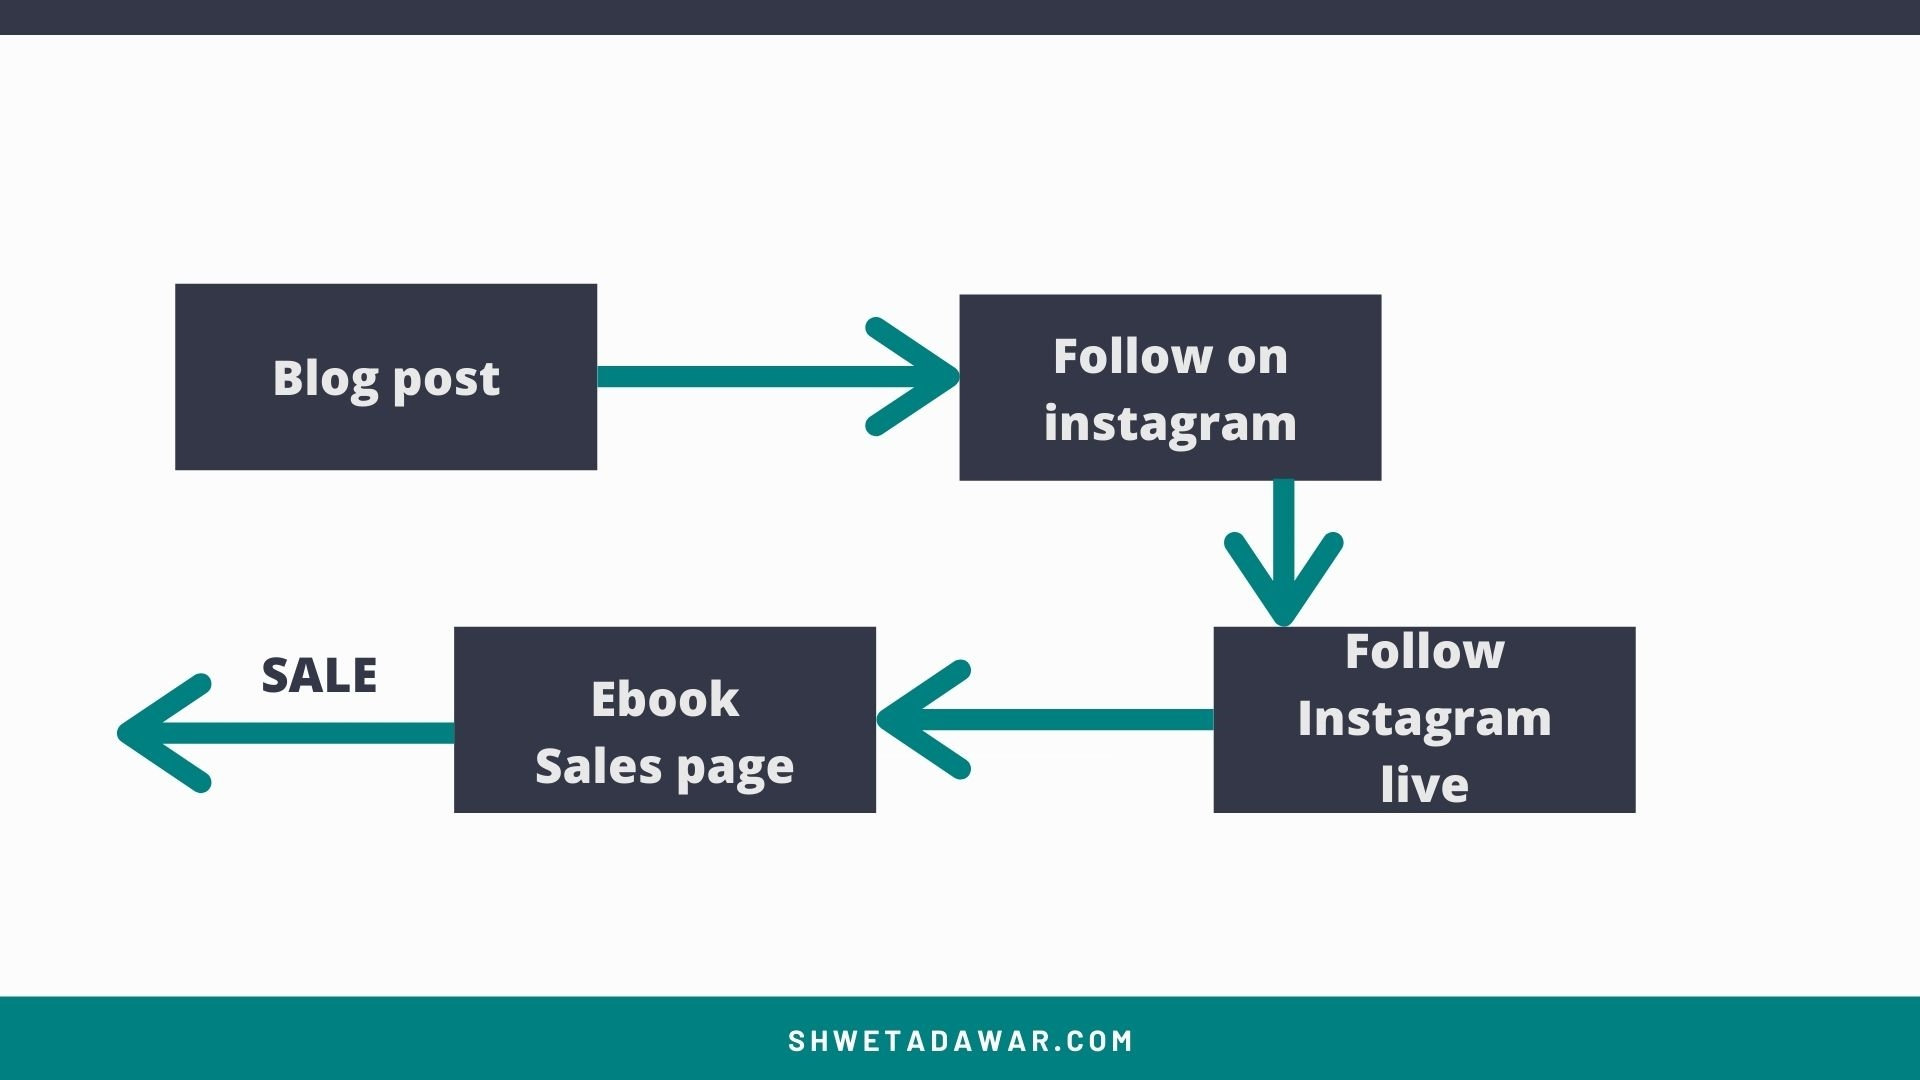 Email Marketing Funnel: The Guide